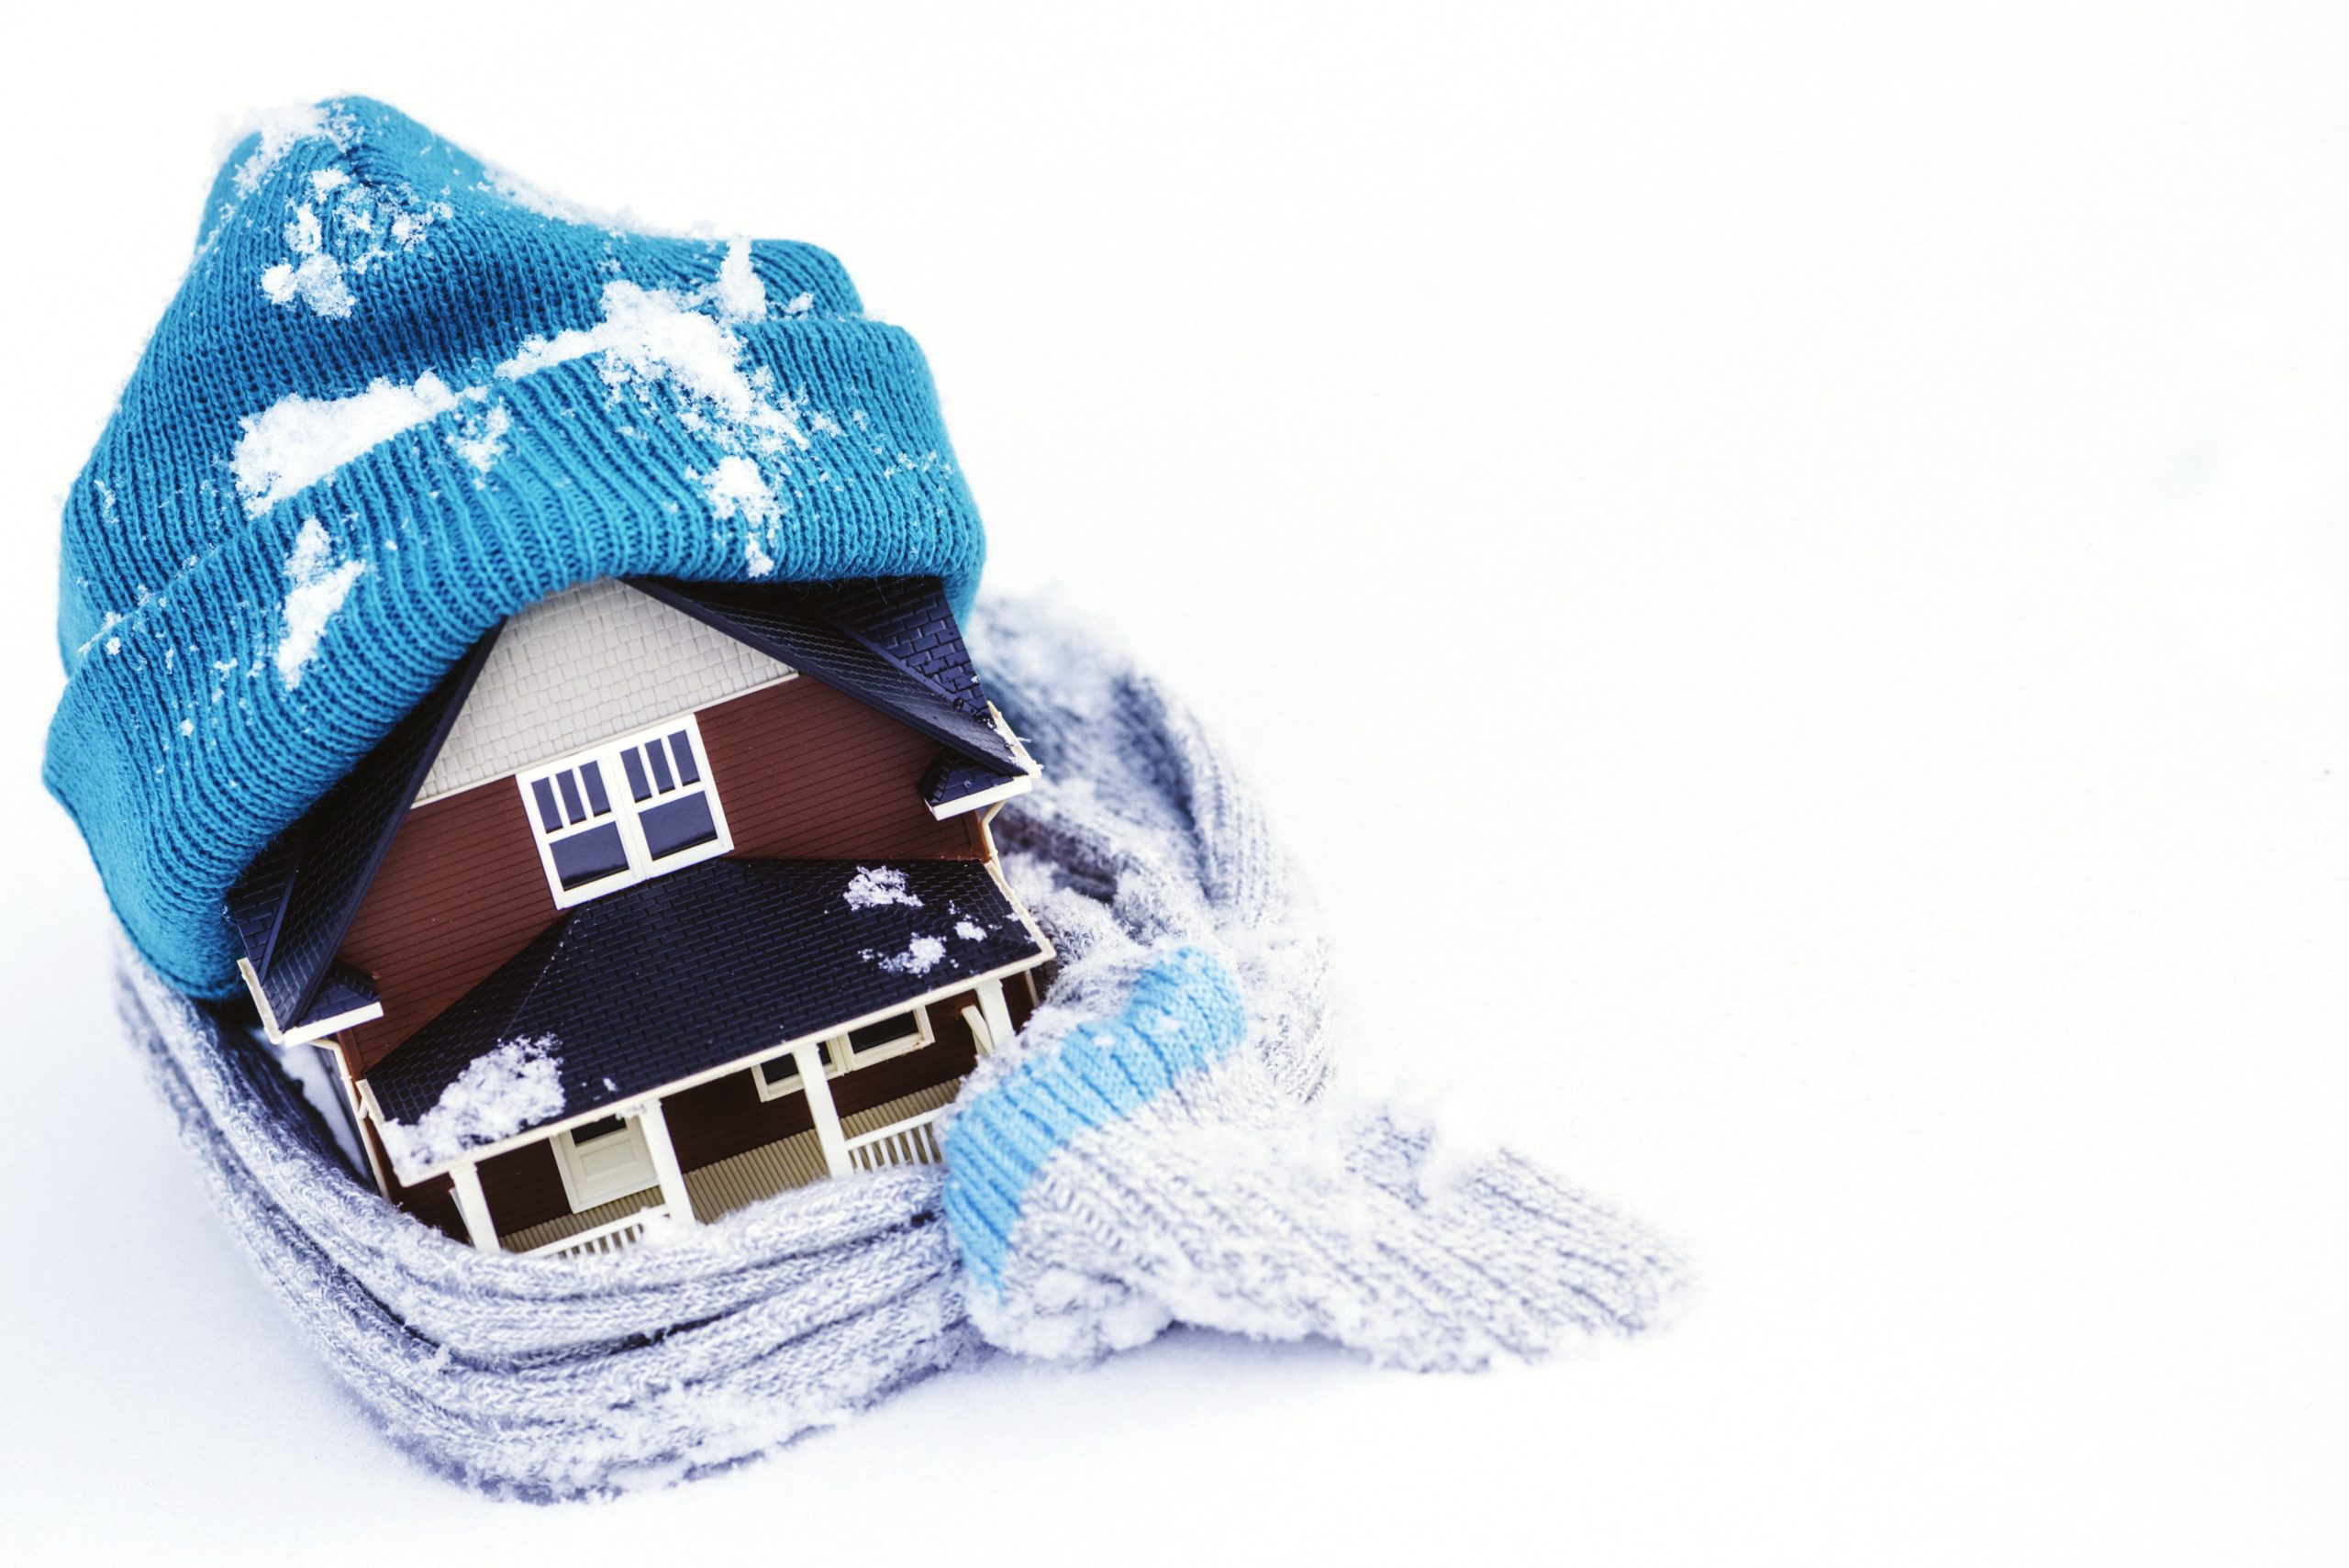 10 Tips to Winterize your Home